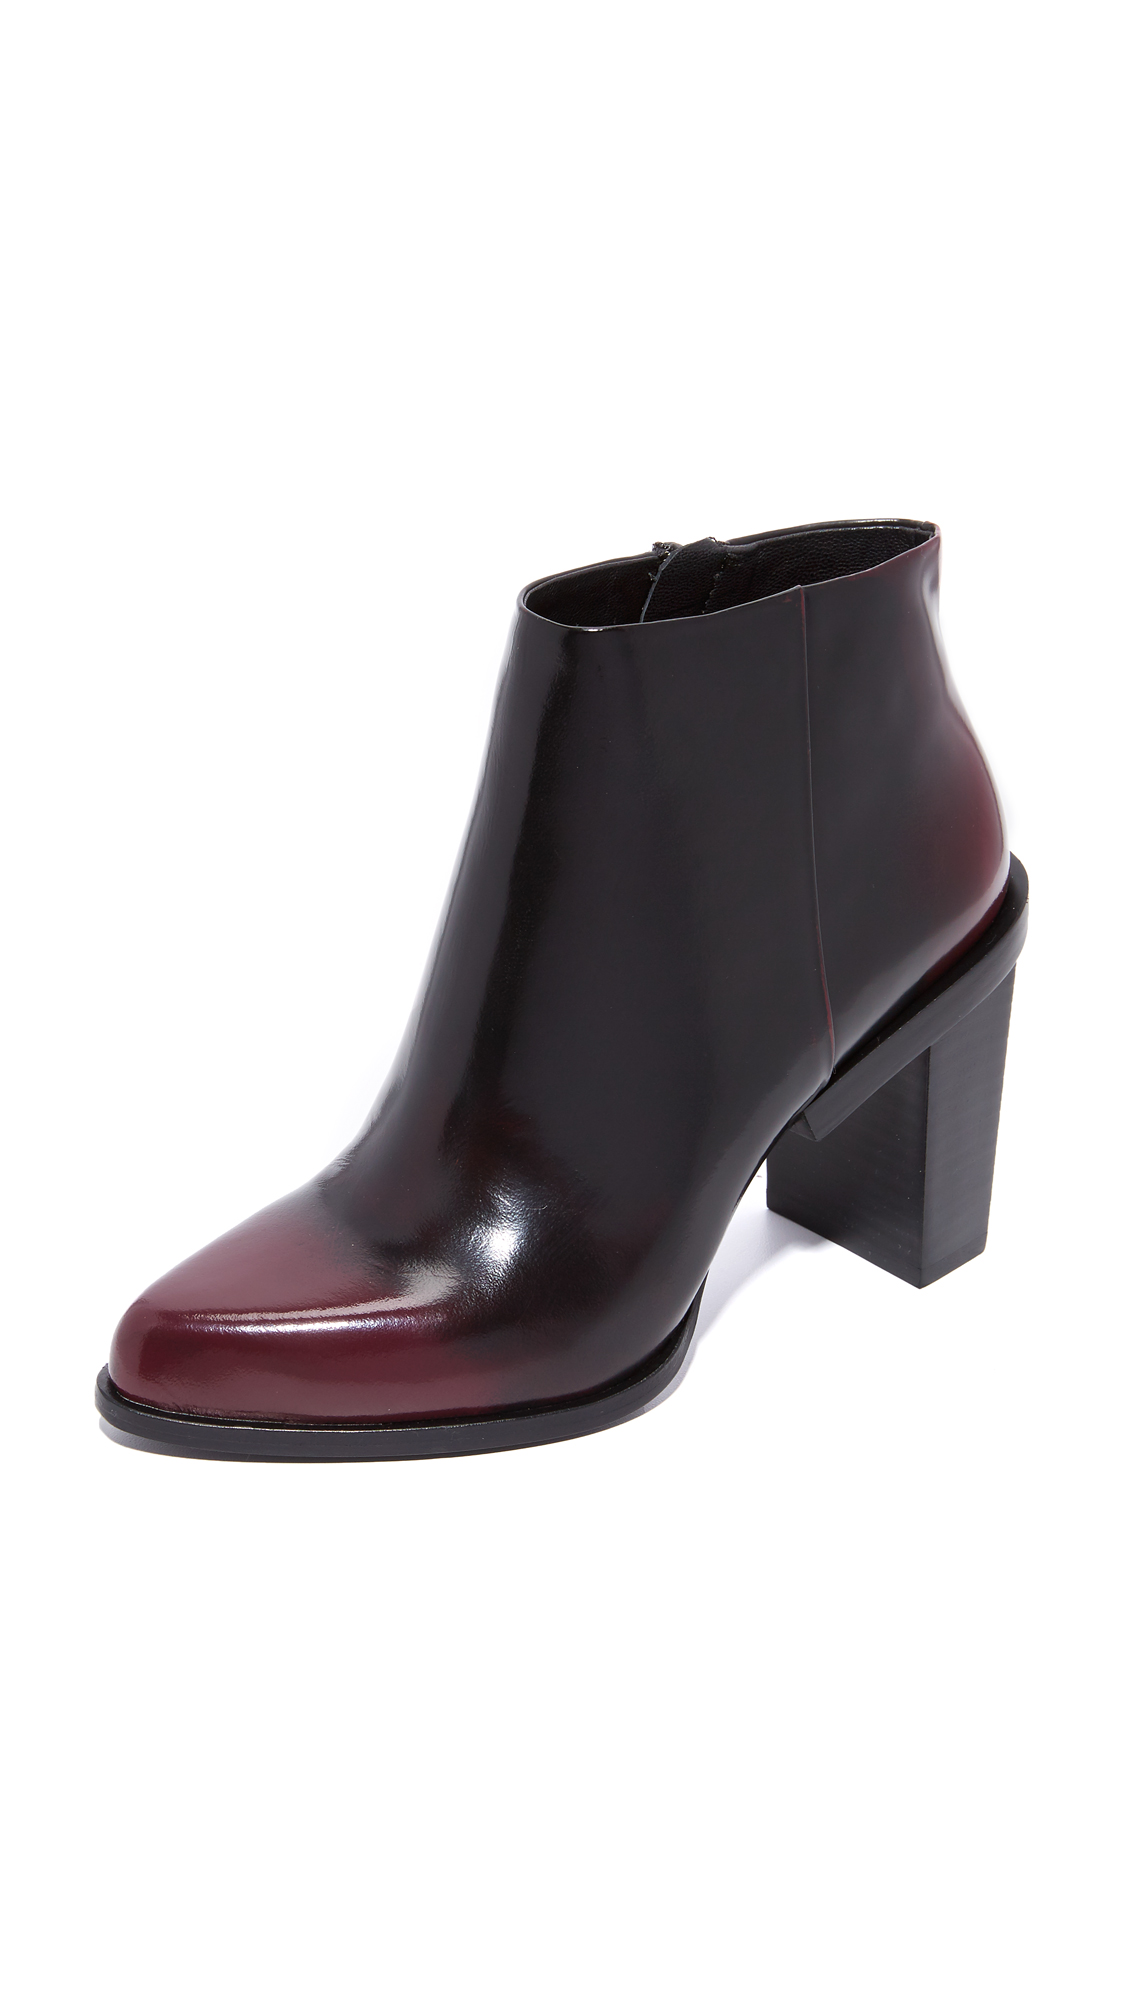 Glossy, two tone leather adds a unique appeal to these pointed toe DKNY boots. Partial platform and a geometric stacked heel. Hidden side zip. Leather sole. Leather: Cowhide. Imported, China. This item cannot be gift boxed.